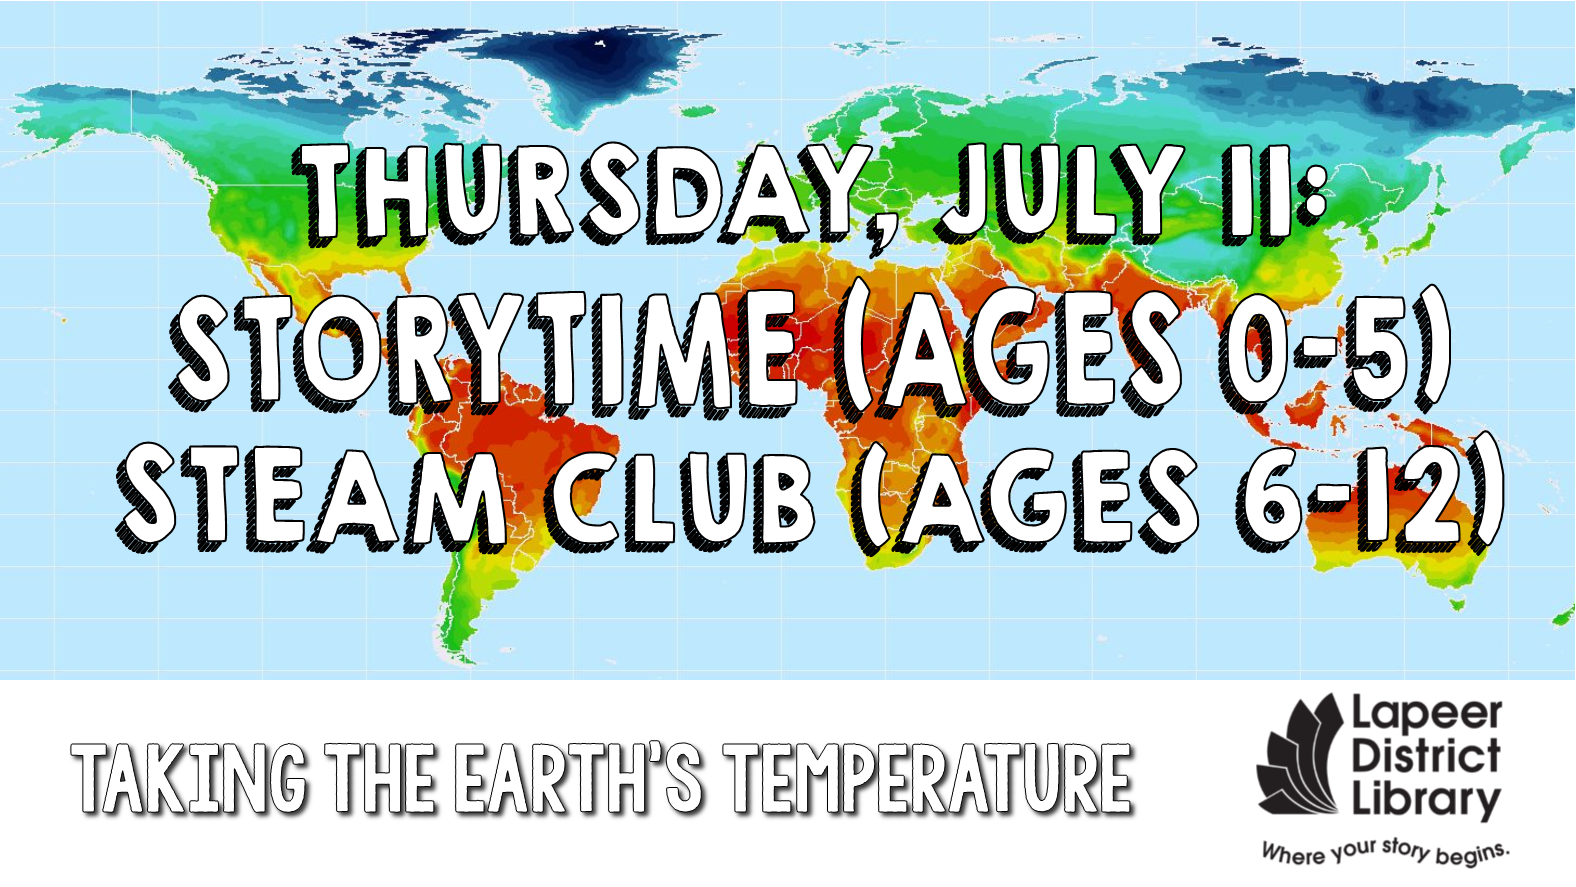 Storytime & STEAM Club - Taking the Earth's Temperature